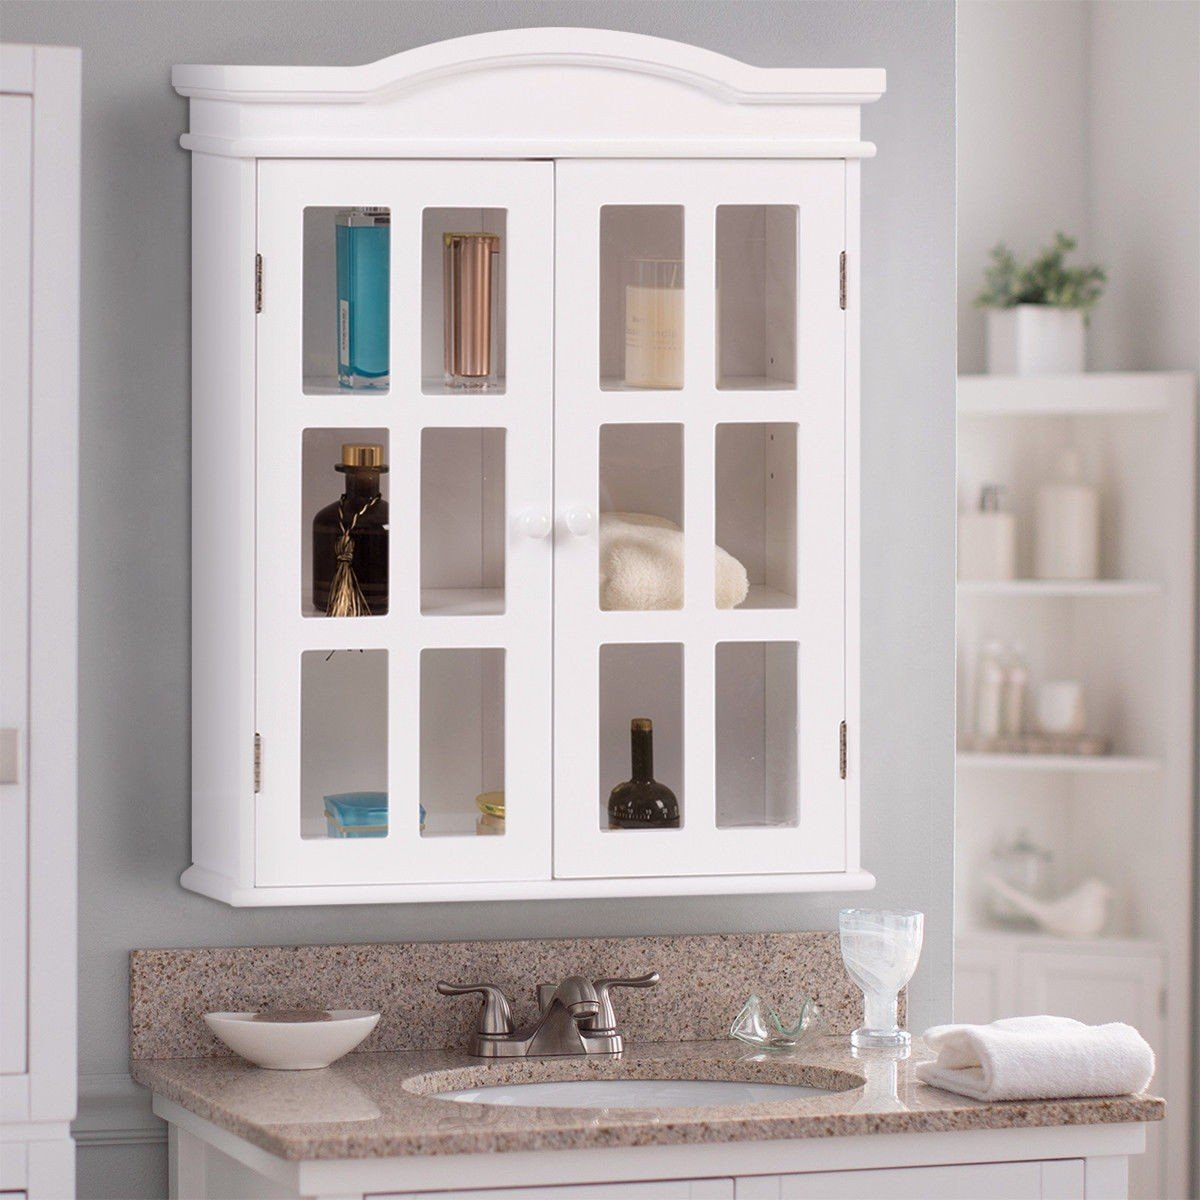 WATERJOY Storage Cabinet, Wall-Mounted Bathroom Cabinet with Doors, Bathroom Fashions Cabinet Cupboard with White Finish and Elegant Design, Great Home Furniture, Elegant White